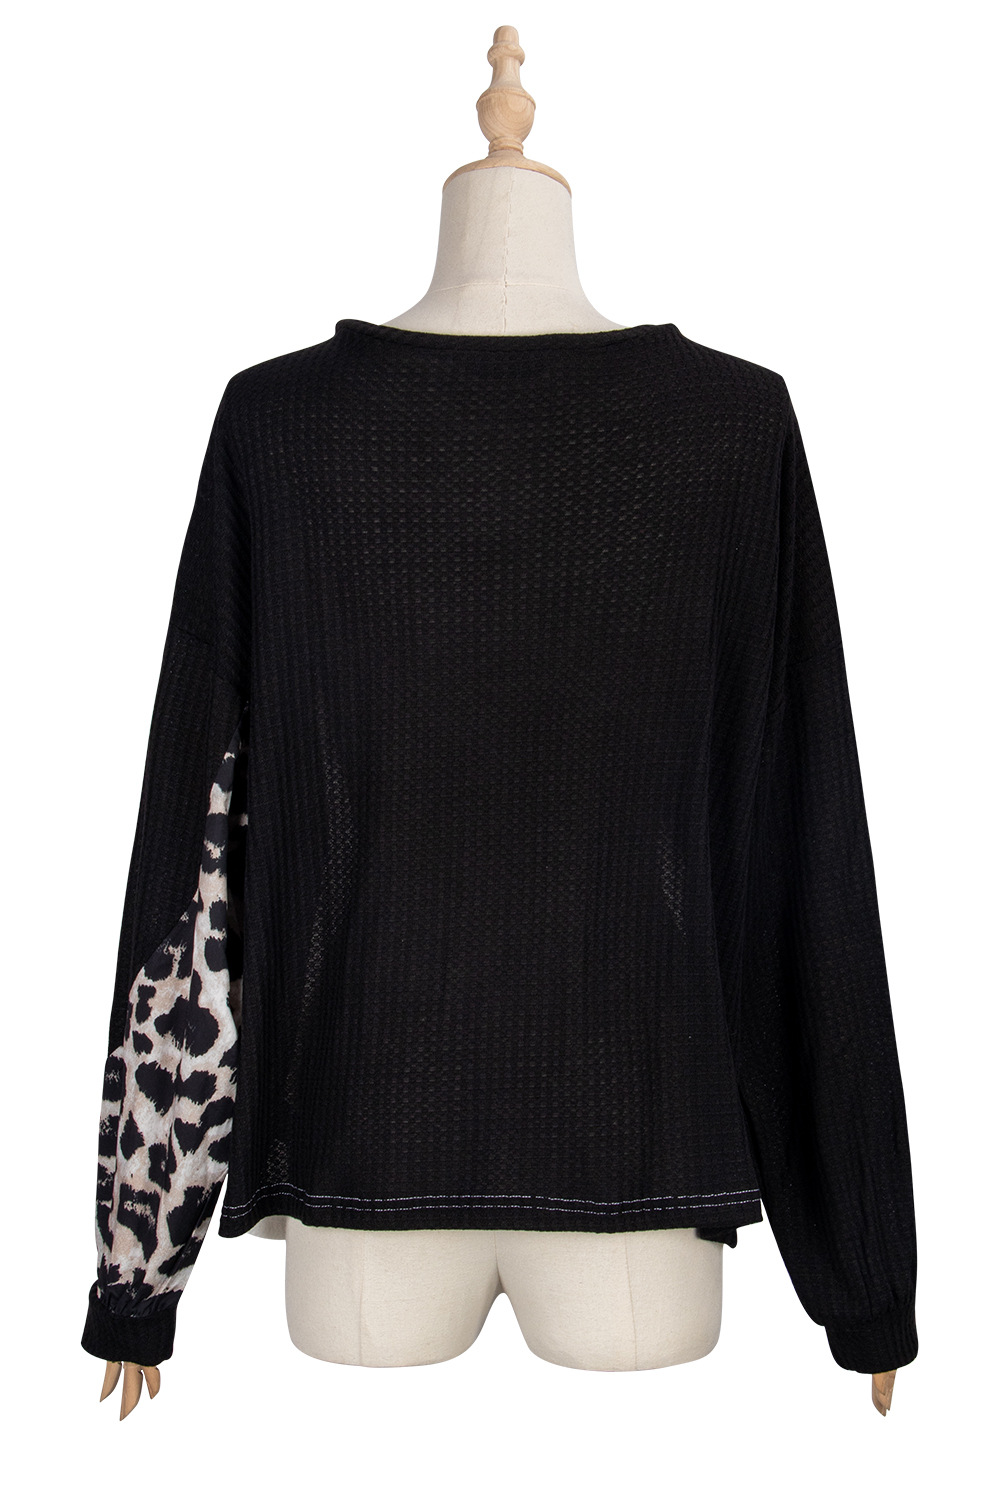 New autumn fashion solid color stitching leopard print long-sleeved knit sweater NHDF246812